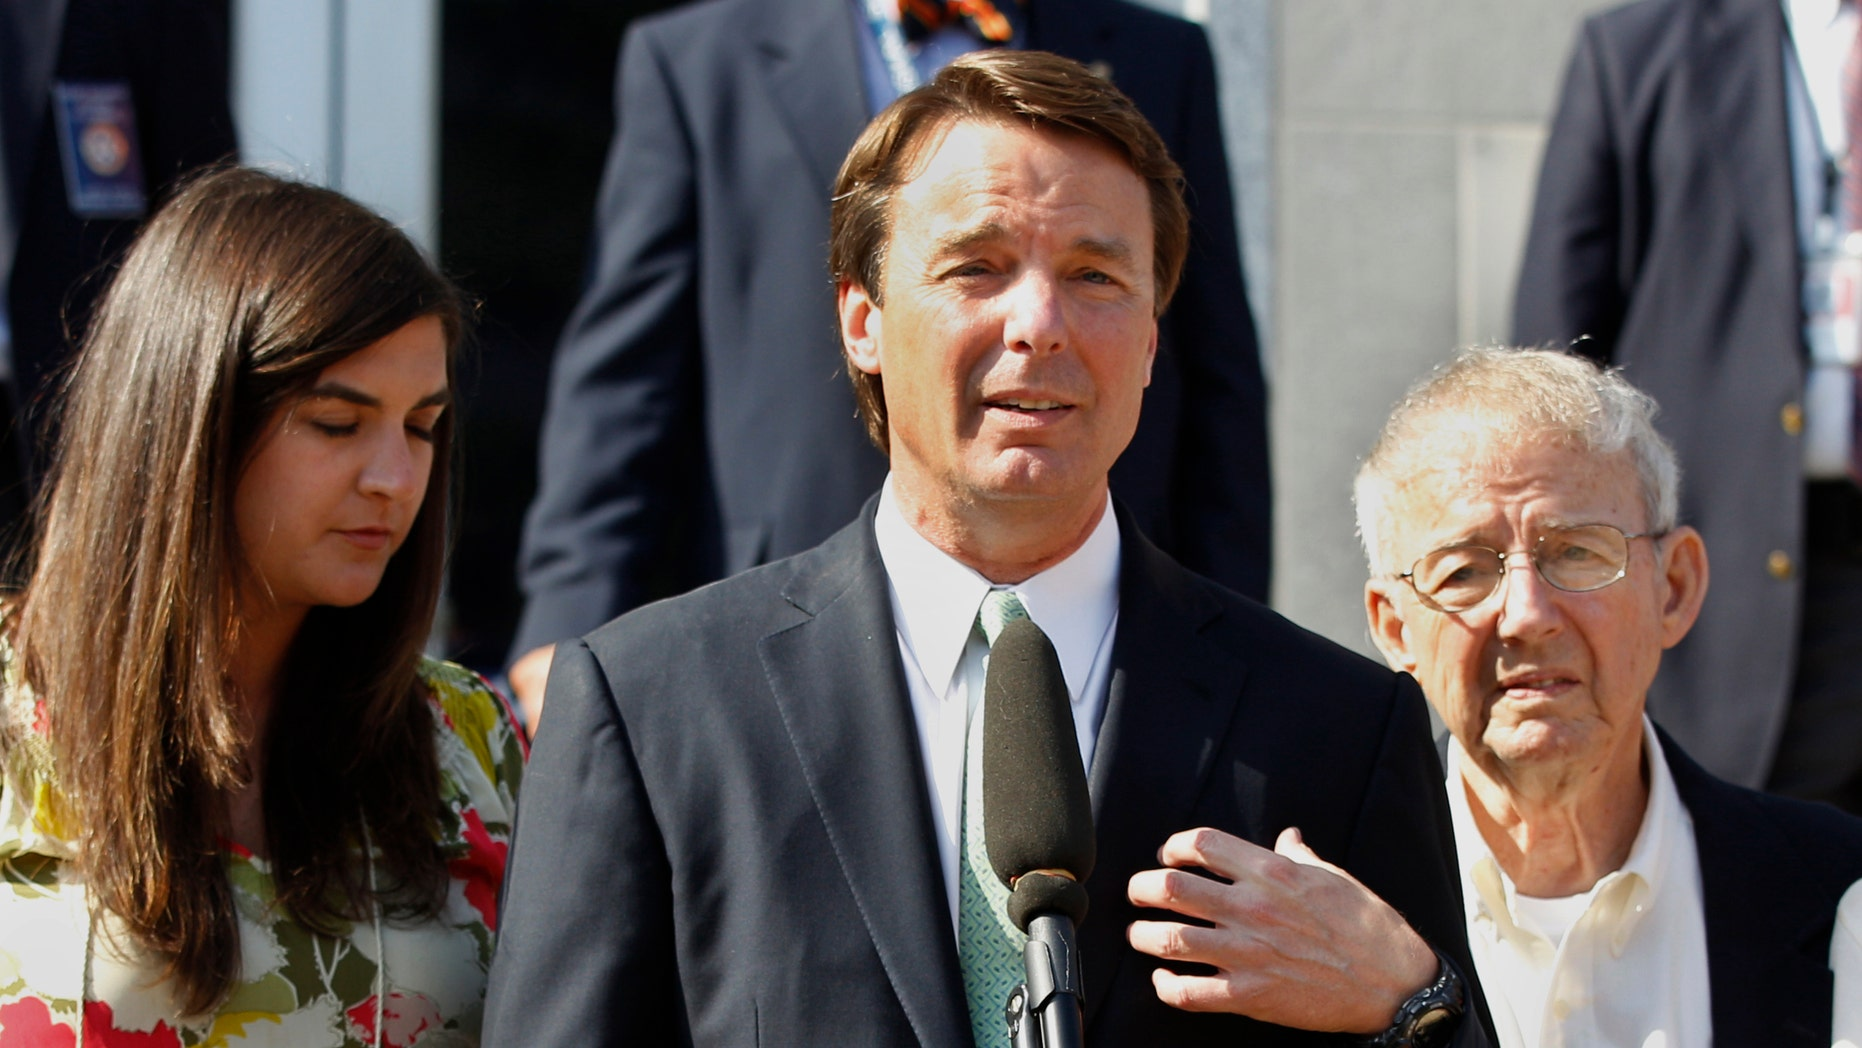 May 31, 2012:  Former presidential candidate John Edwards speaks outside a federal courthouse as his daughter, Cate Edwards, left, and father Wallace Edwards, listen after his campaign finance fraud case ended in a mistrial, in Greensboro, N.C.